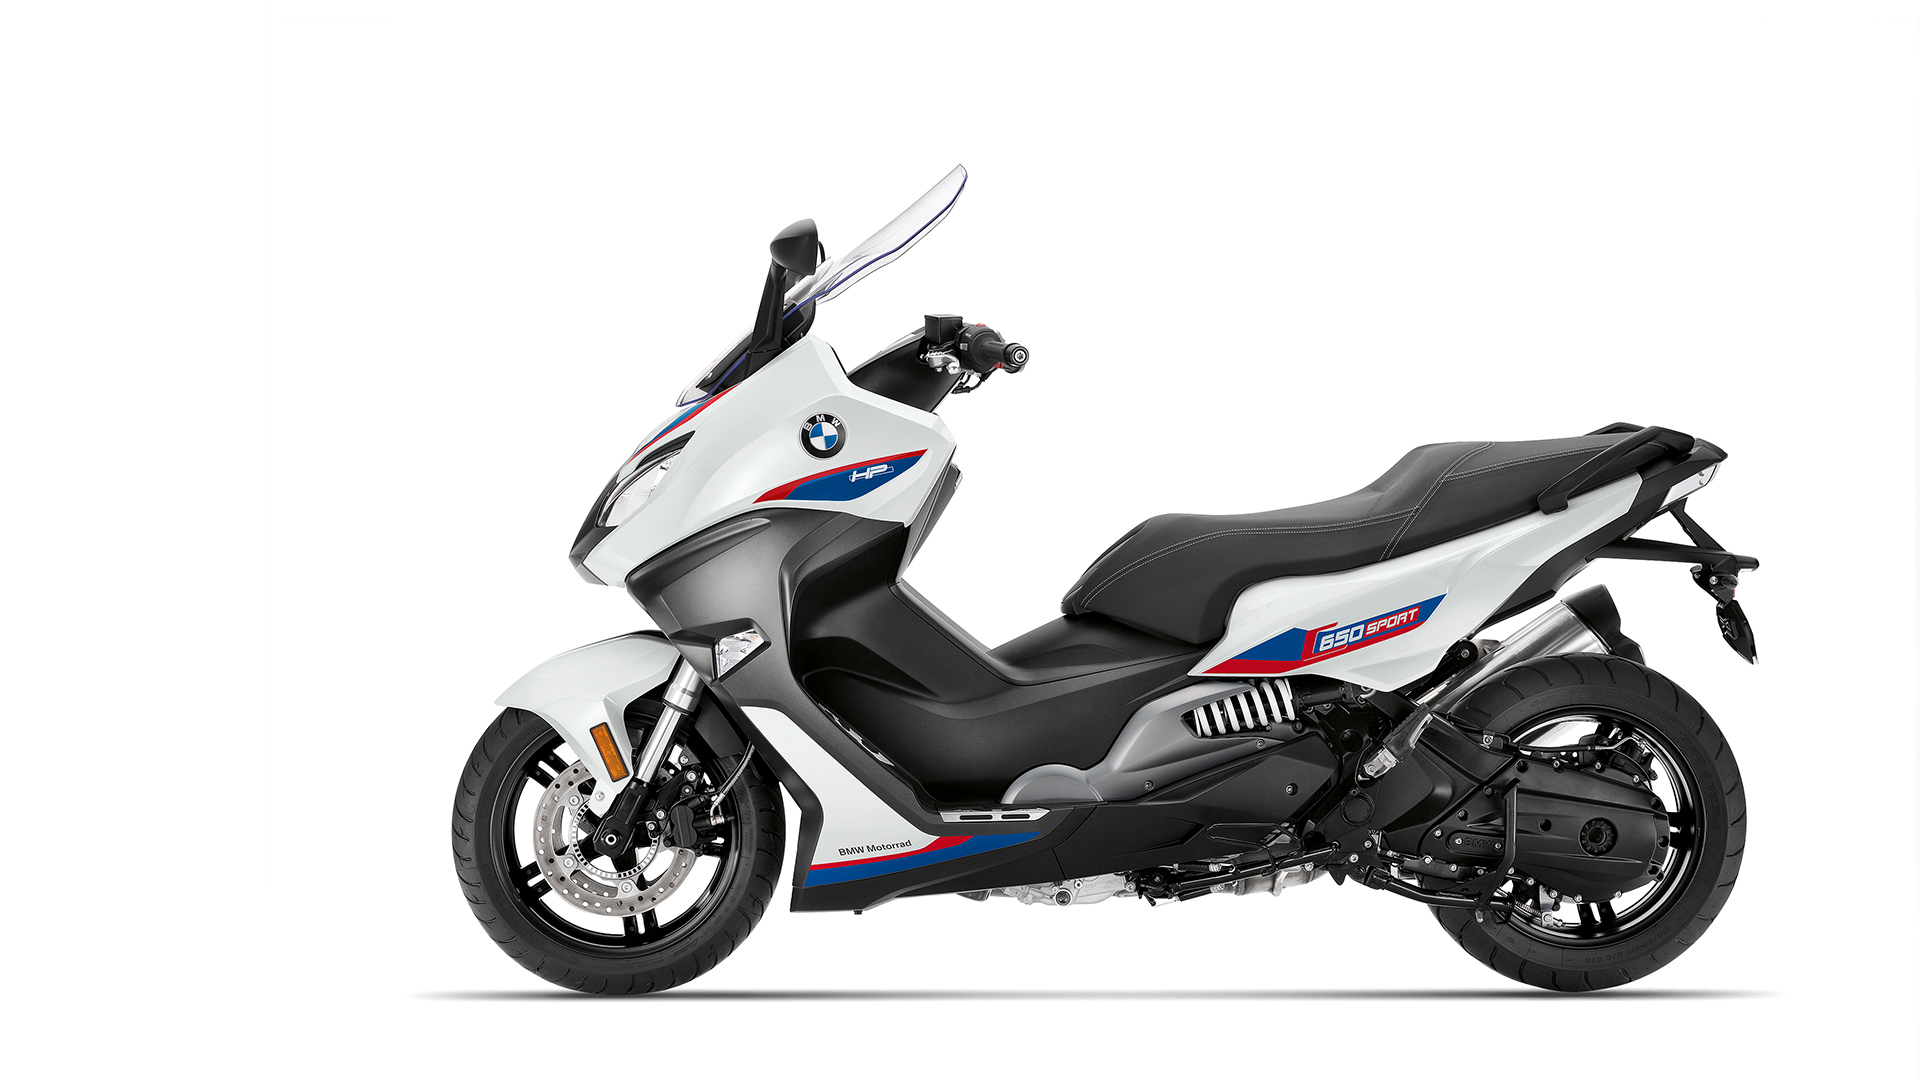 2019 Bmw C 650 Sport For Sale At Teammoto New Bikes Springwood Bmw